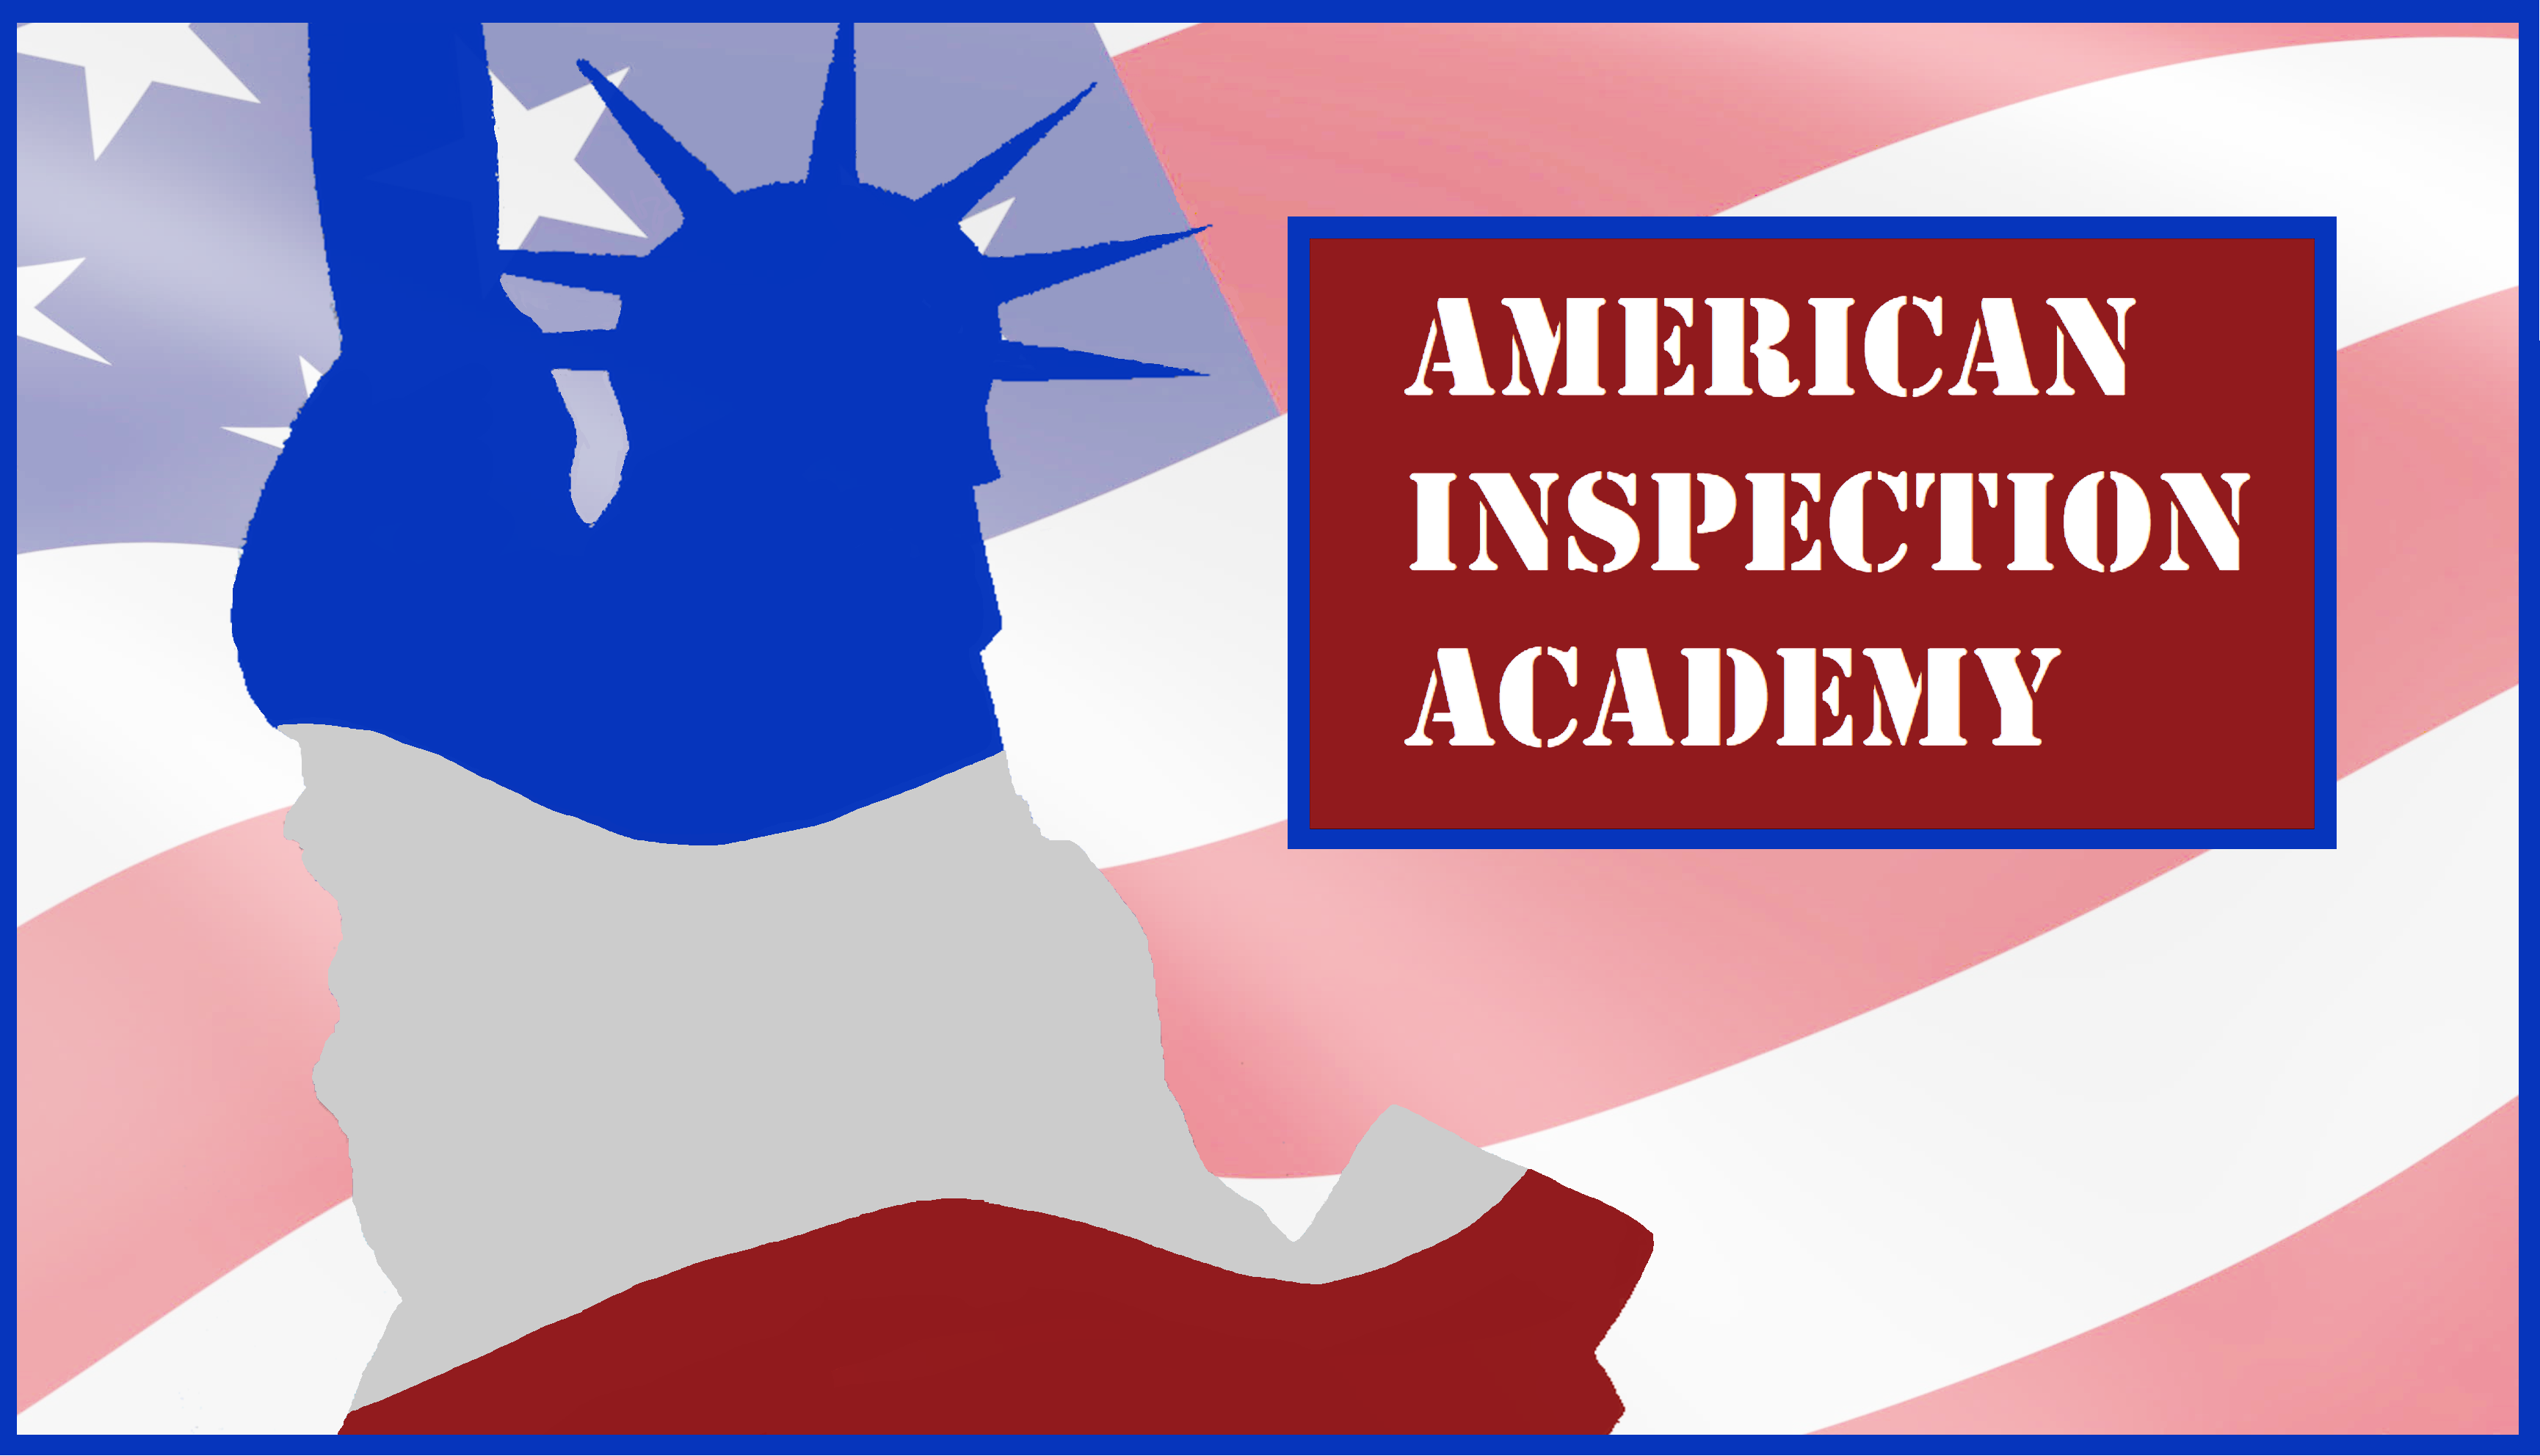 American Inspection Academy home inspection training course on insulation and ventilation